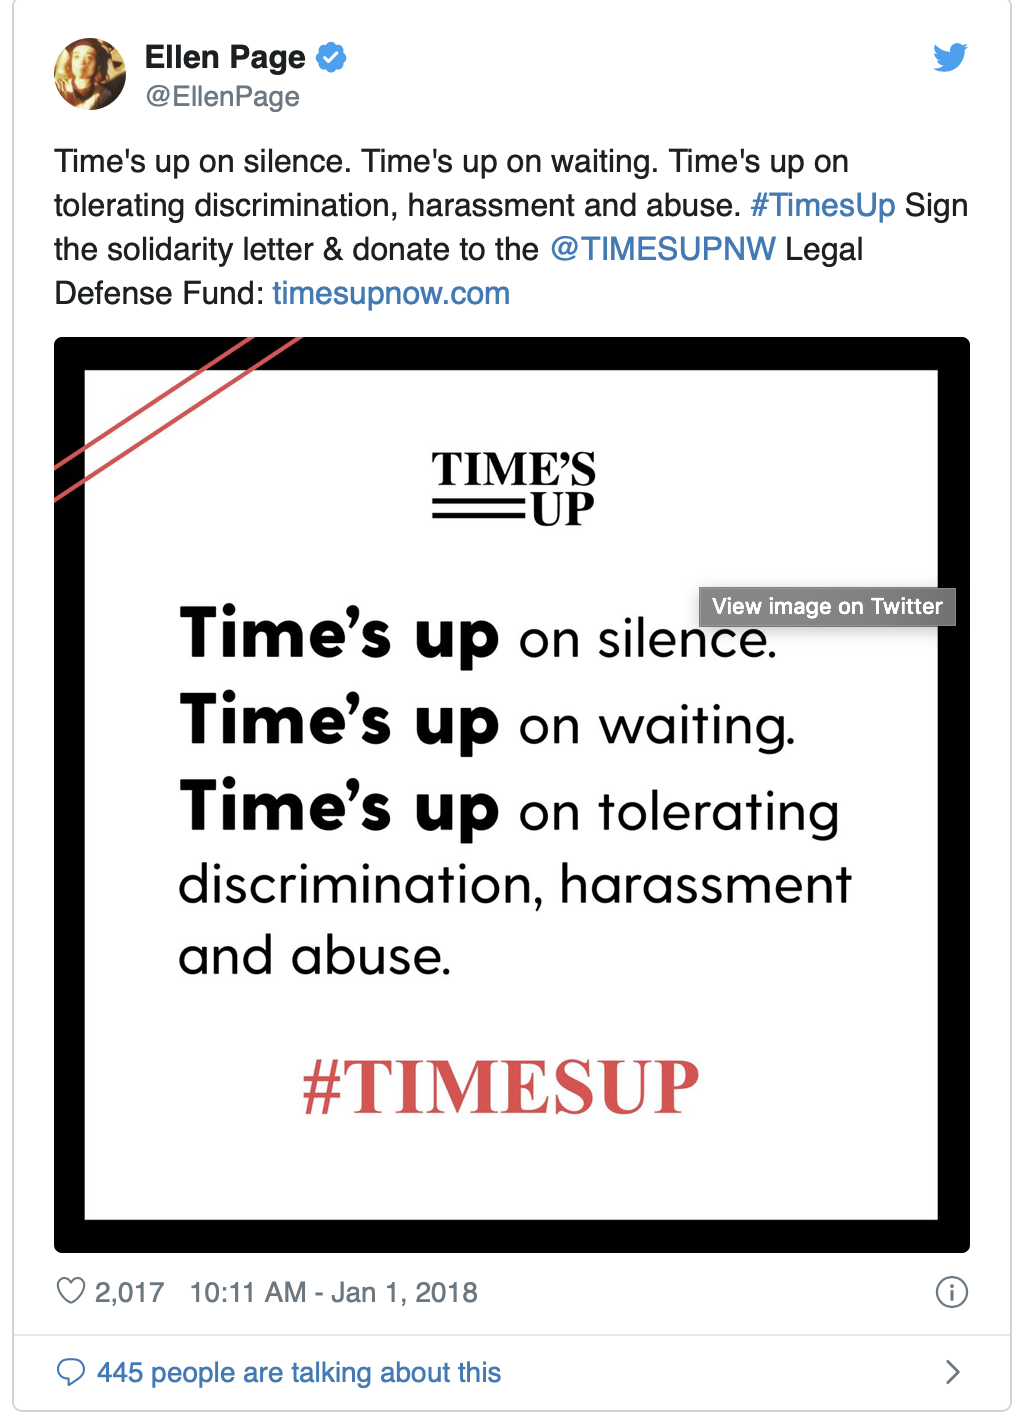 Ellen Pages tweet about the #TimesUp movemet. It states ?Time?s up on slience? waiting? tolerating??